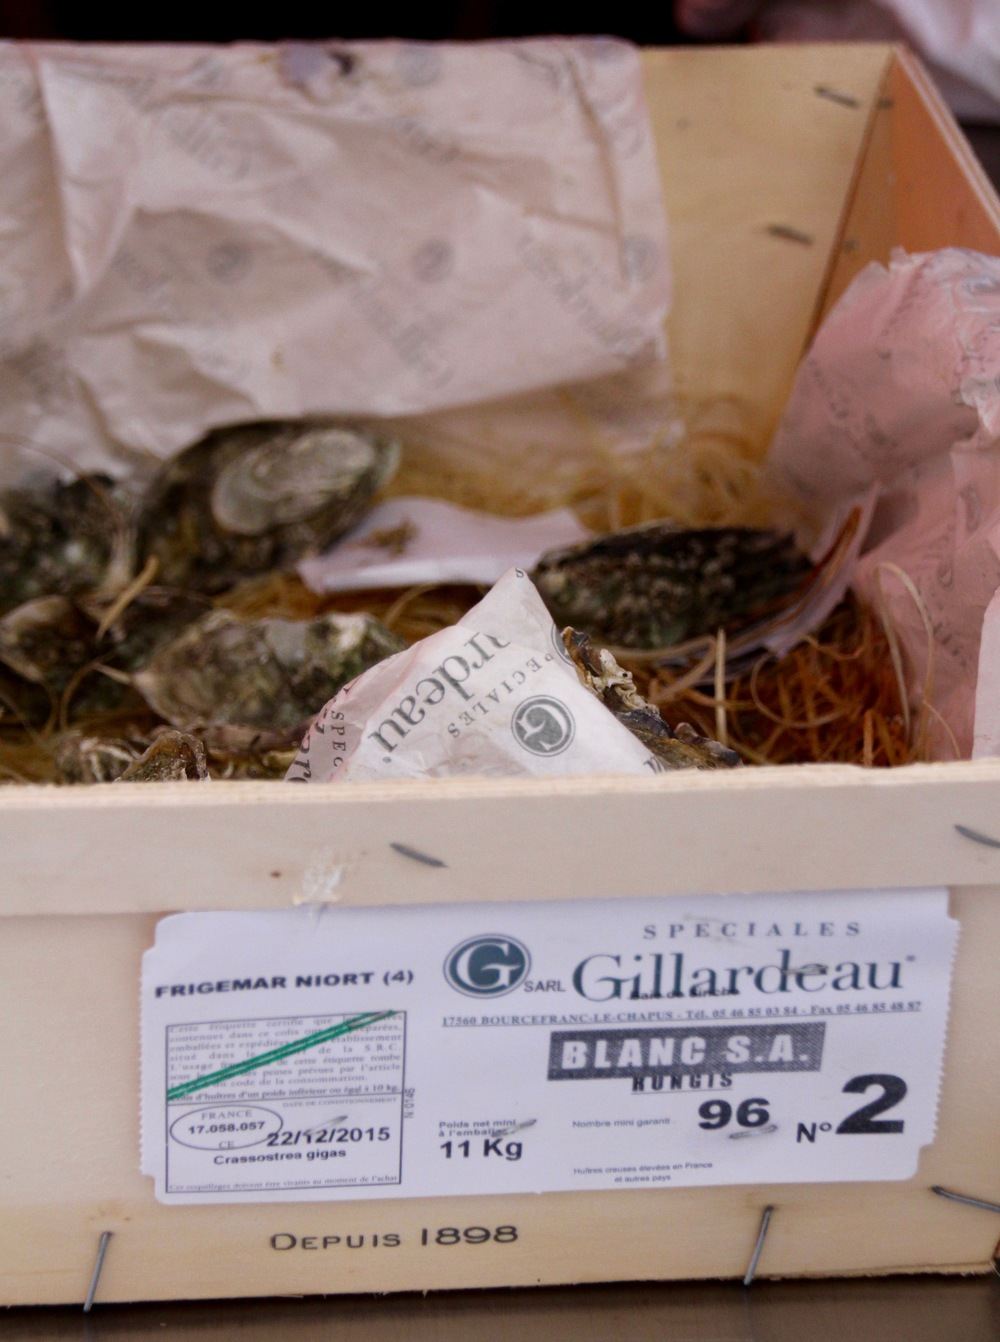 Oyster tag on a box of No 2 Gillardeau Speciales. Note the species (Crassostrea gigas) and the harvest date (12/22- this photo was taken on 12/28, so these were very fresh oysters).